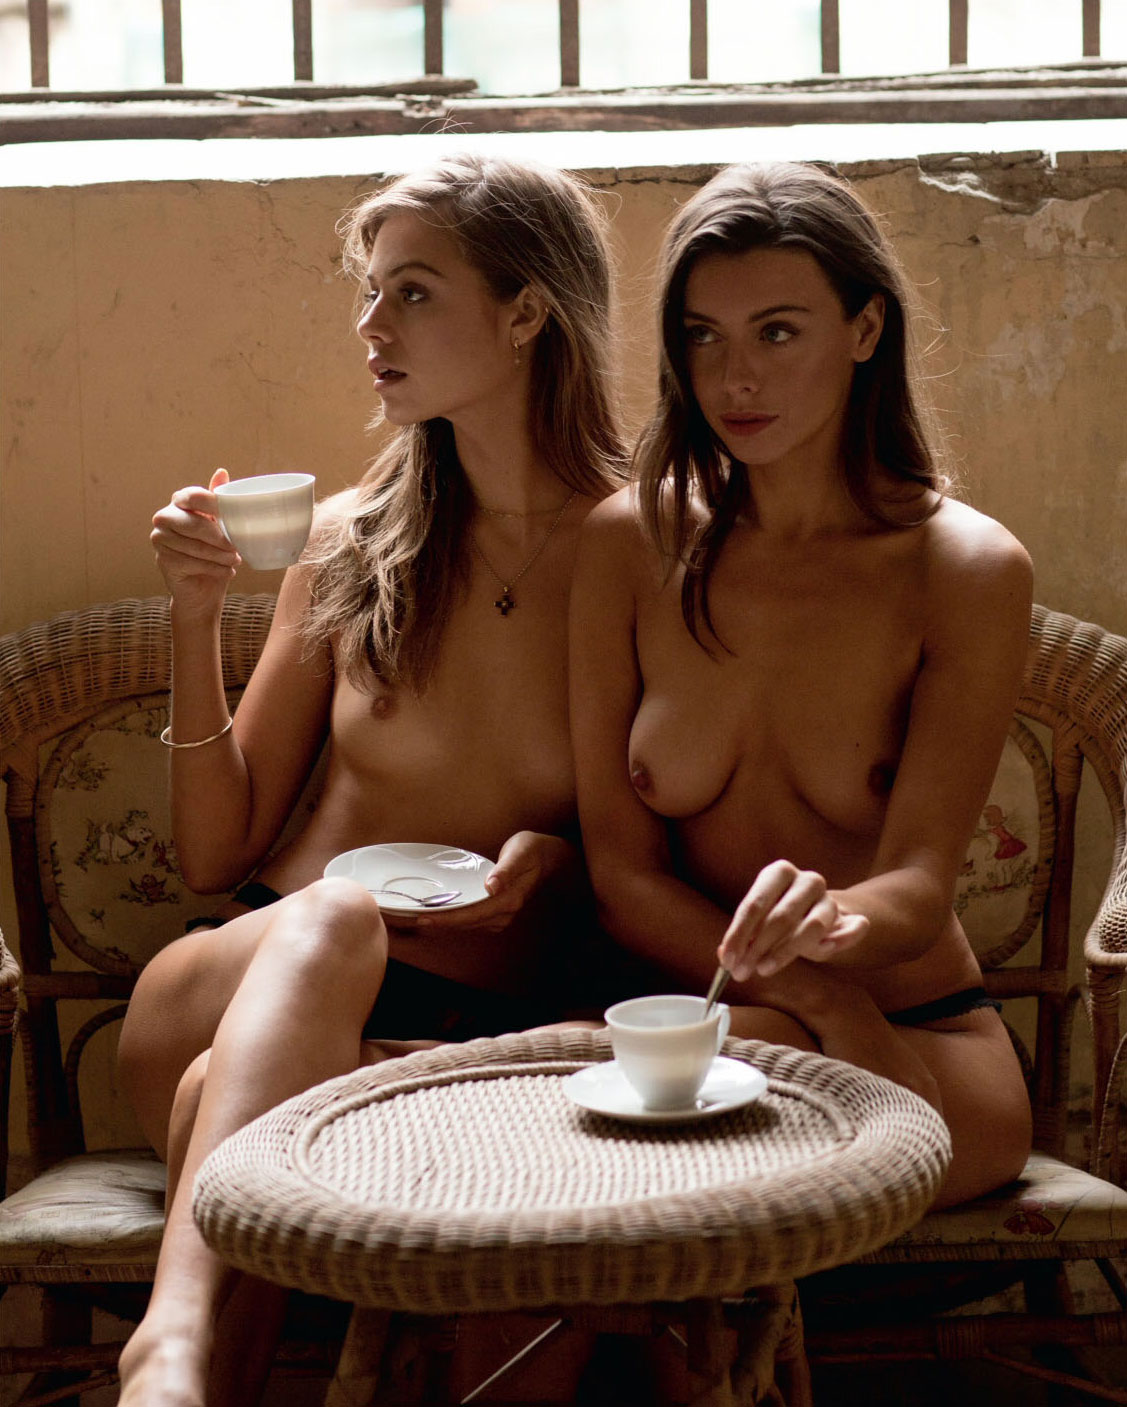 When in Rome / Jess Clarke and Roxanna June by Ali Mitton - Playboy US march/april 2018